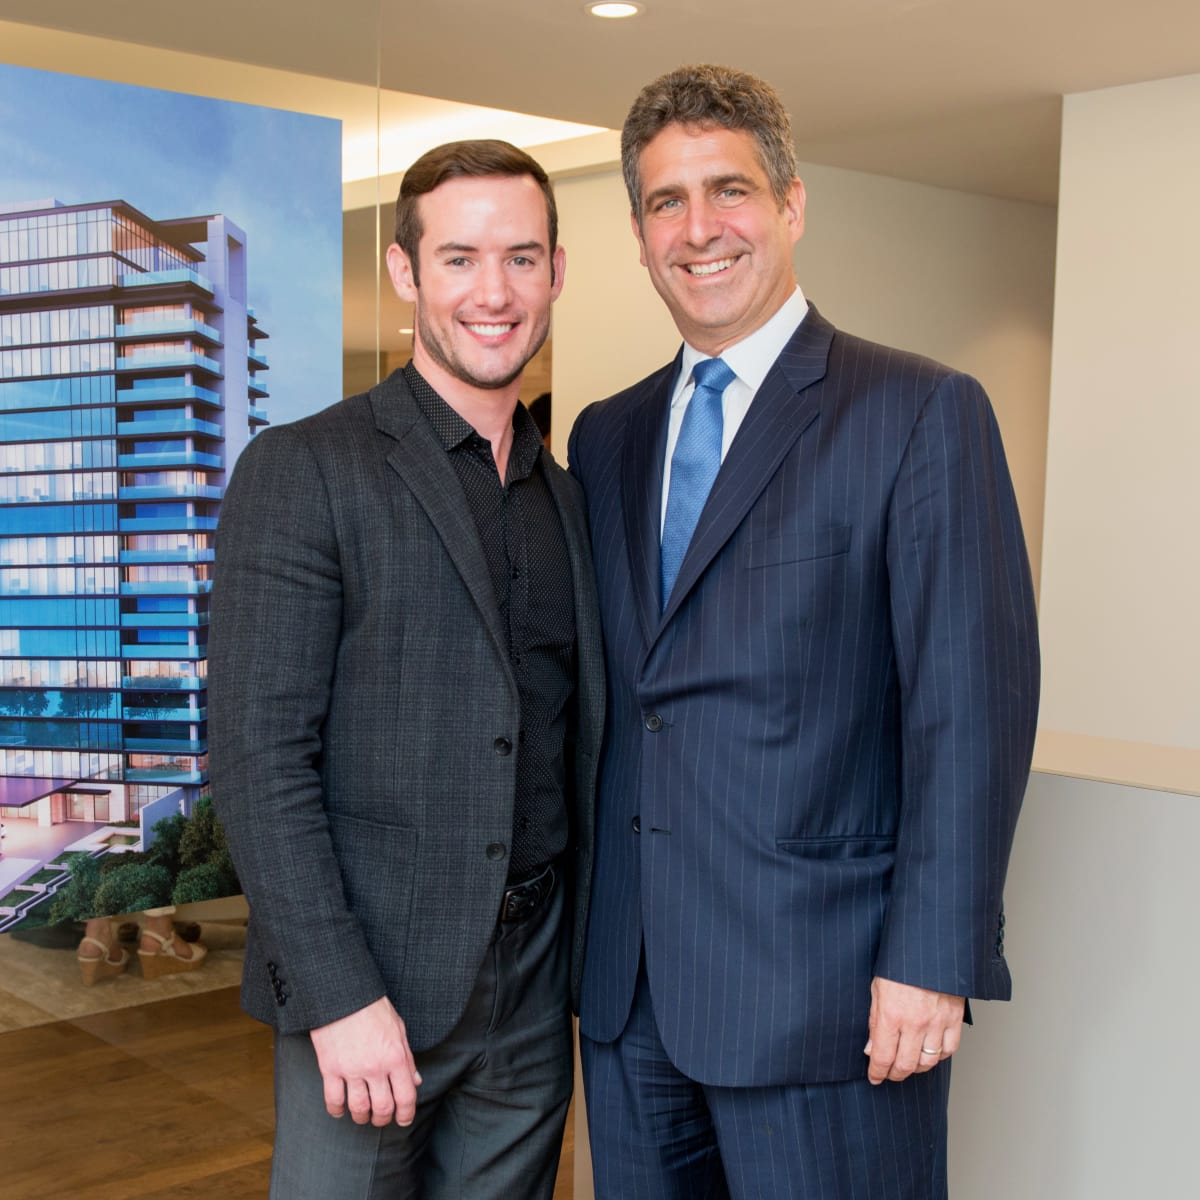 Houston, The River Oaks High Rise Preview Party, June 2015, Jacob Sudhoff, Richard Leibovitch